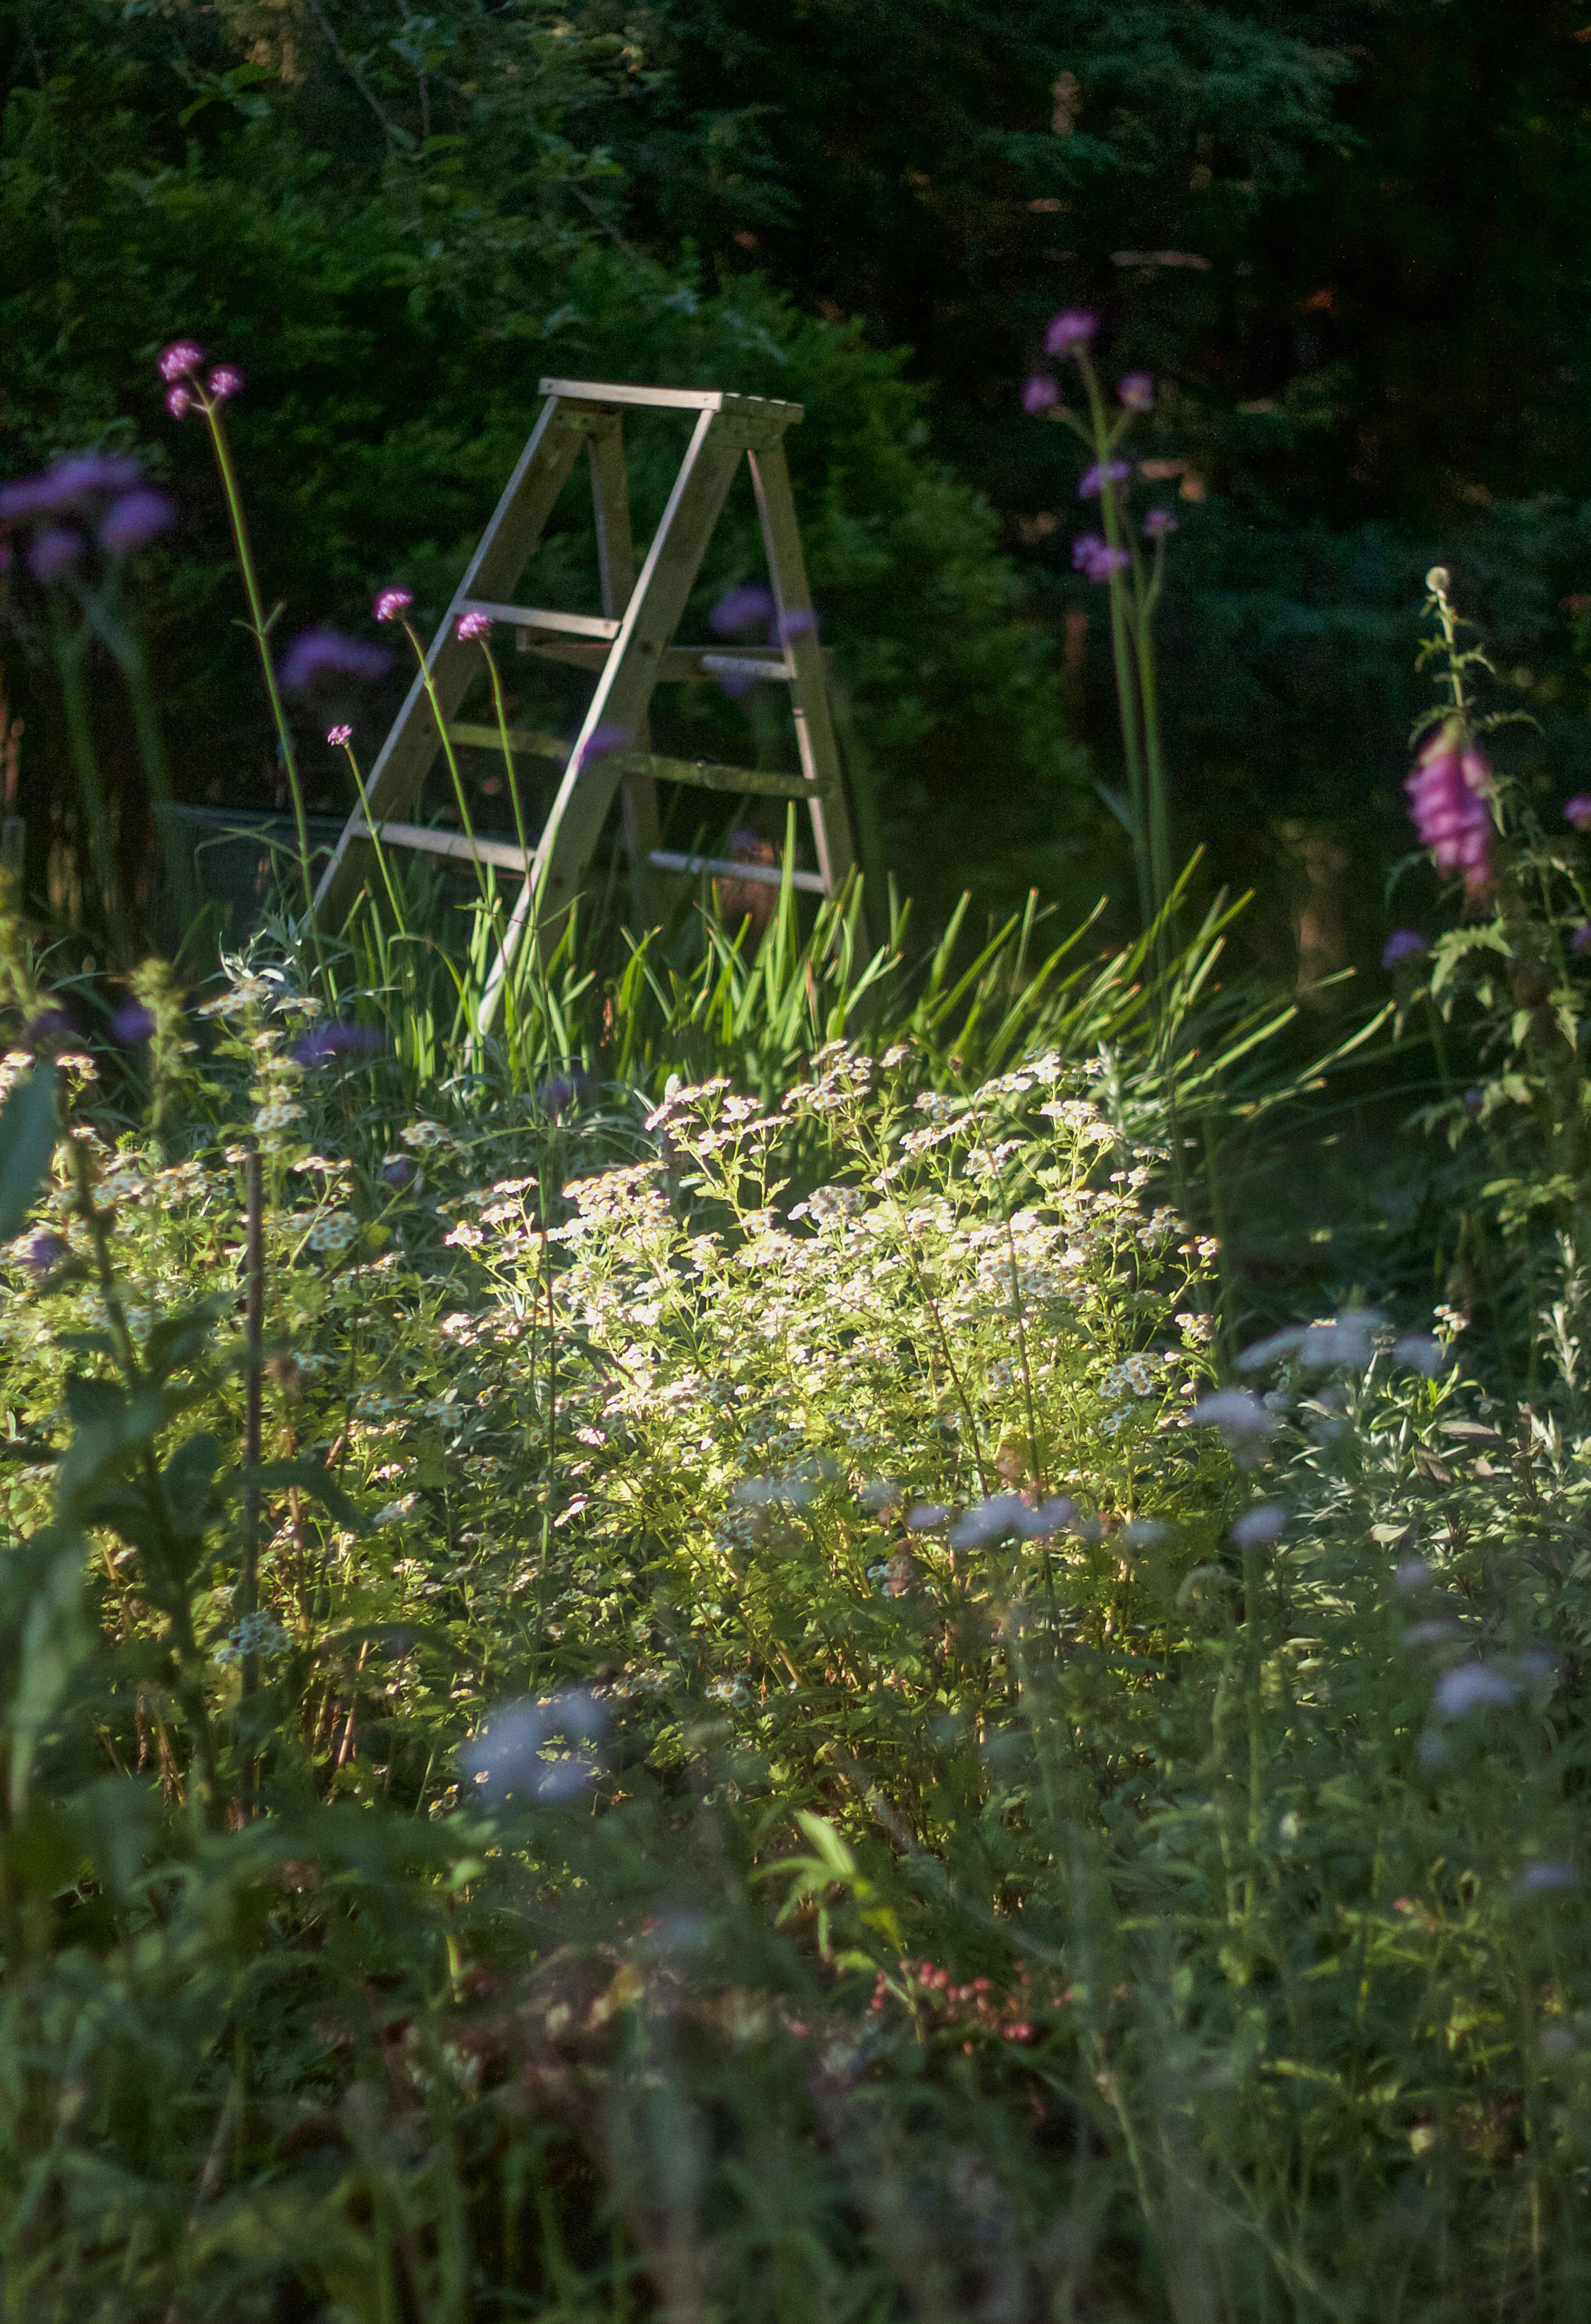 A garden ladder in the July twilight.